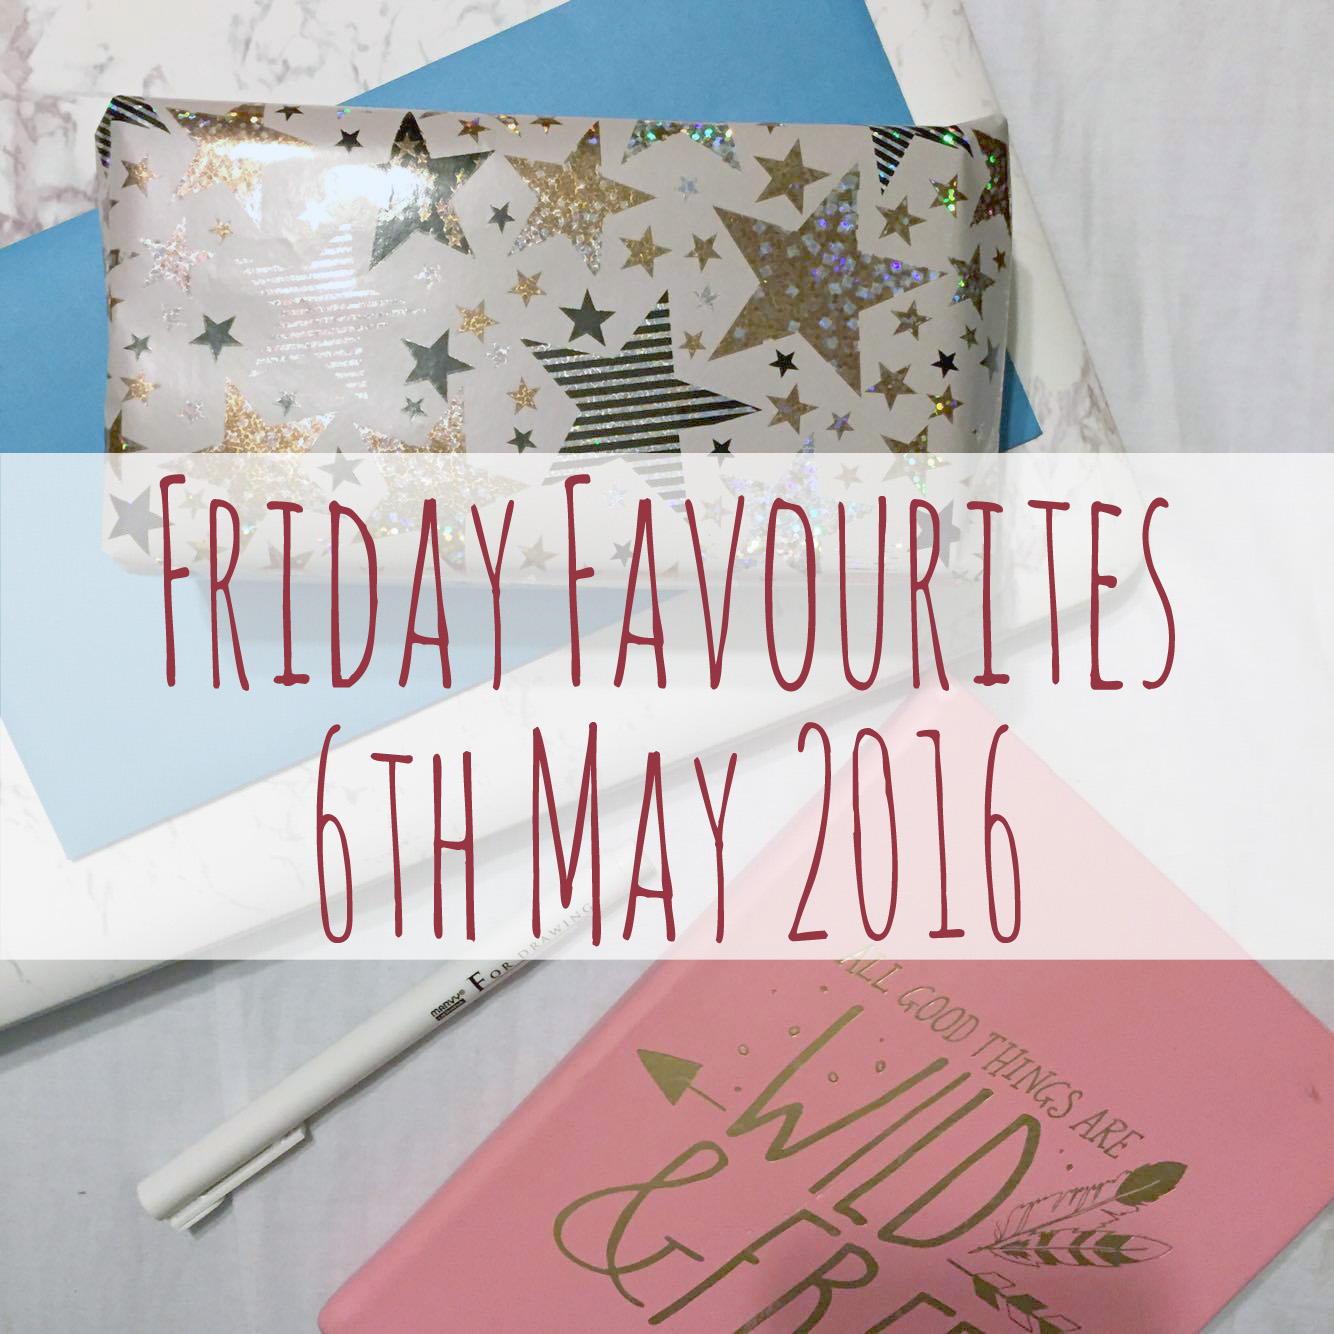 Friday Favourites 6th May 2016.